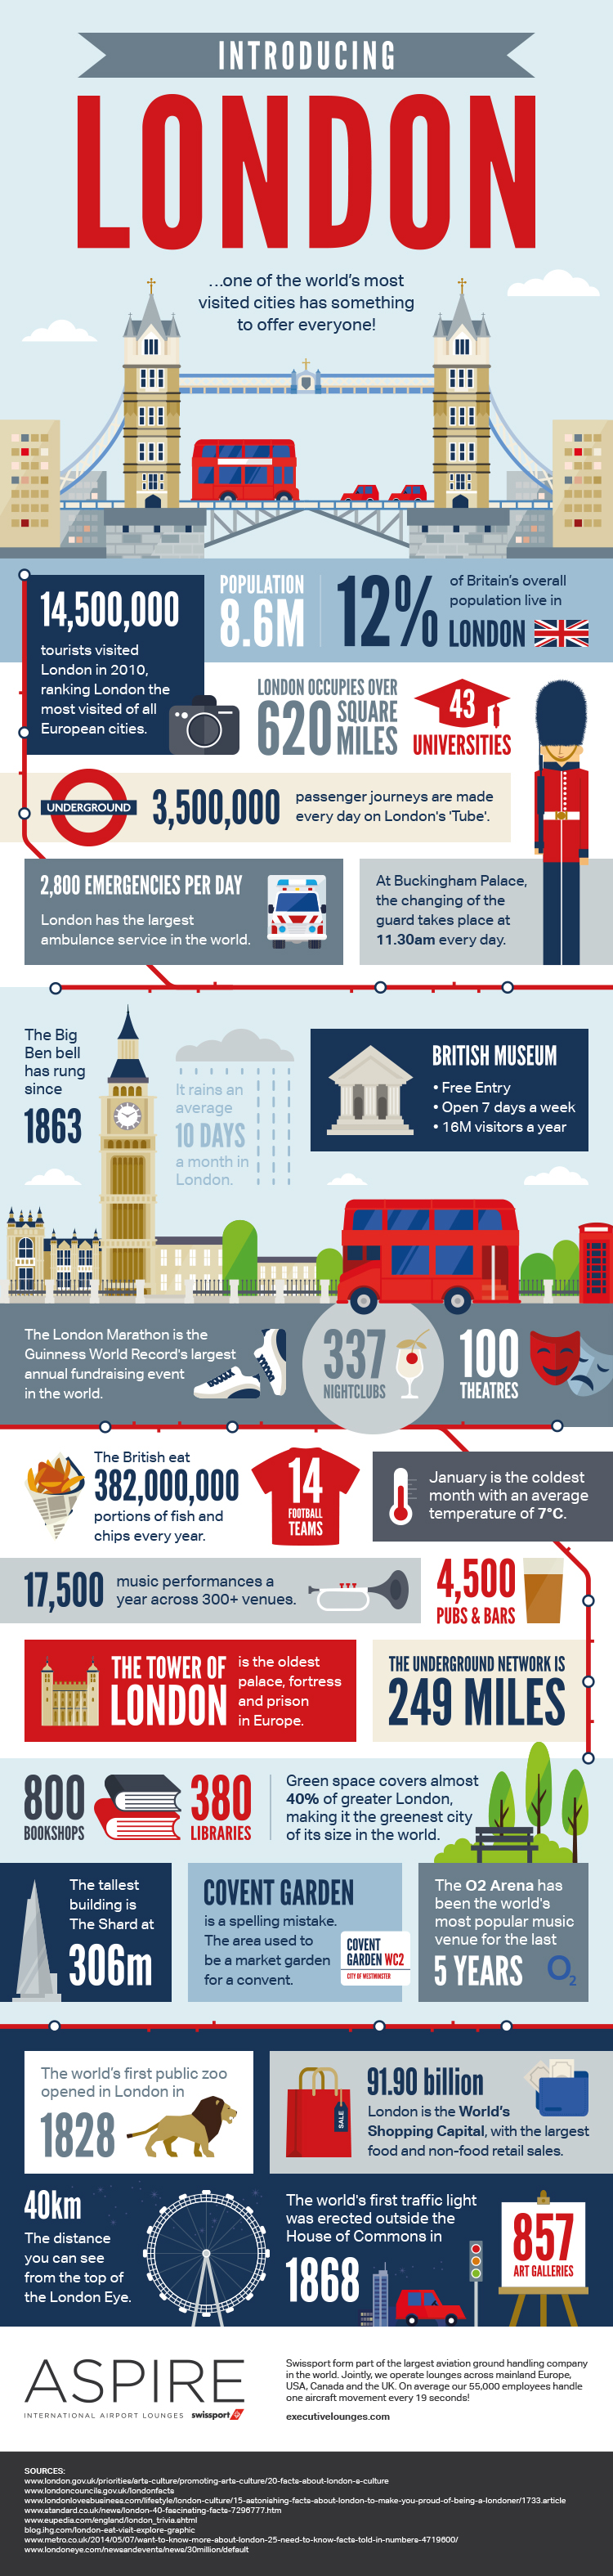 London City Guide Infographic